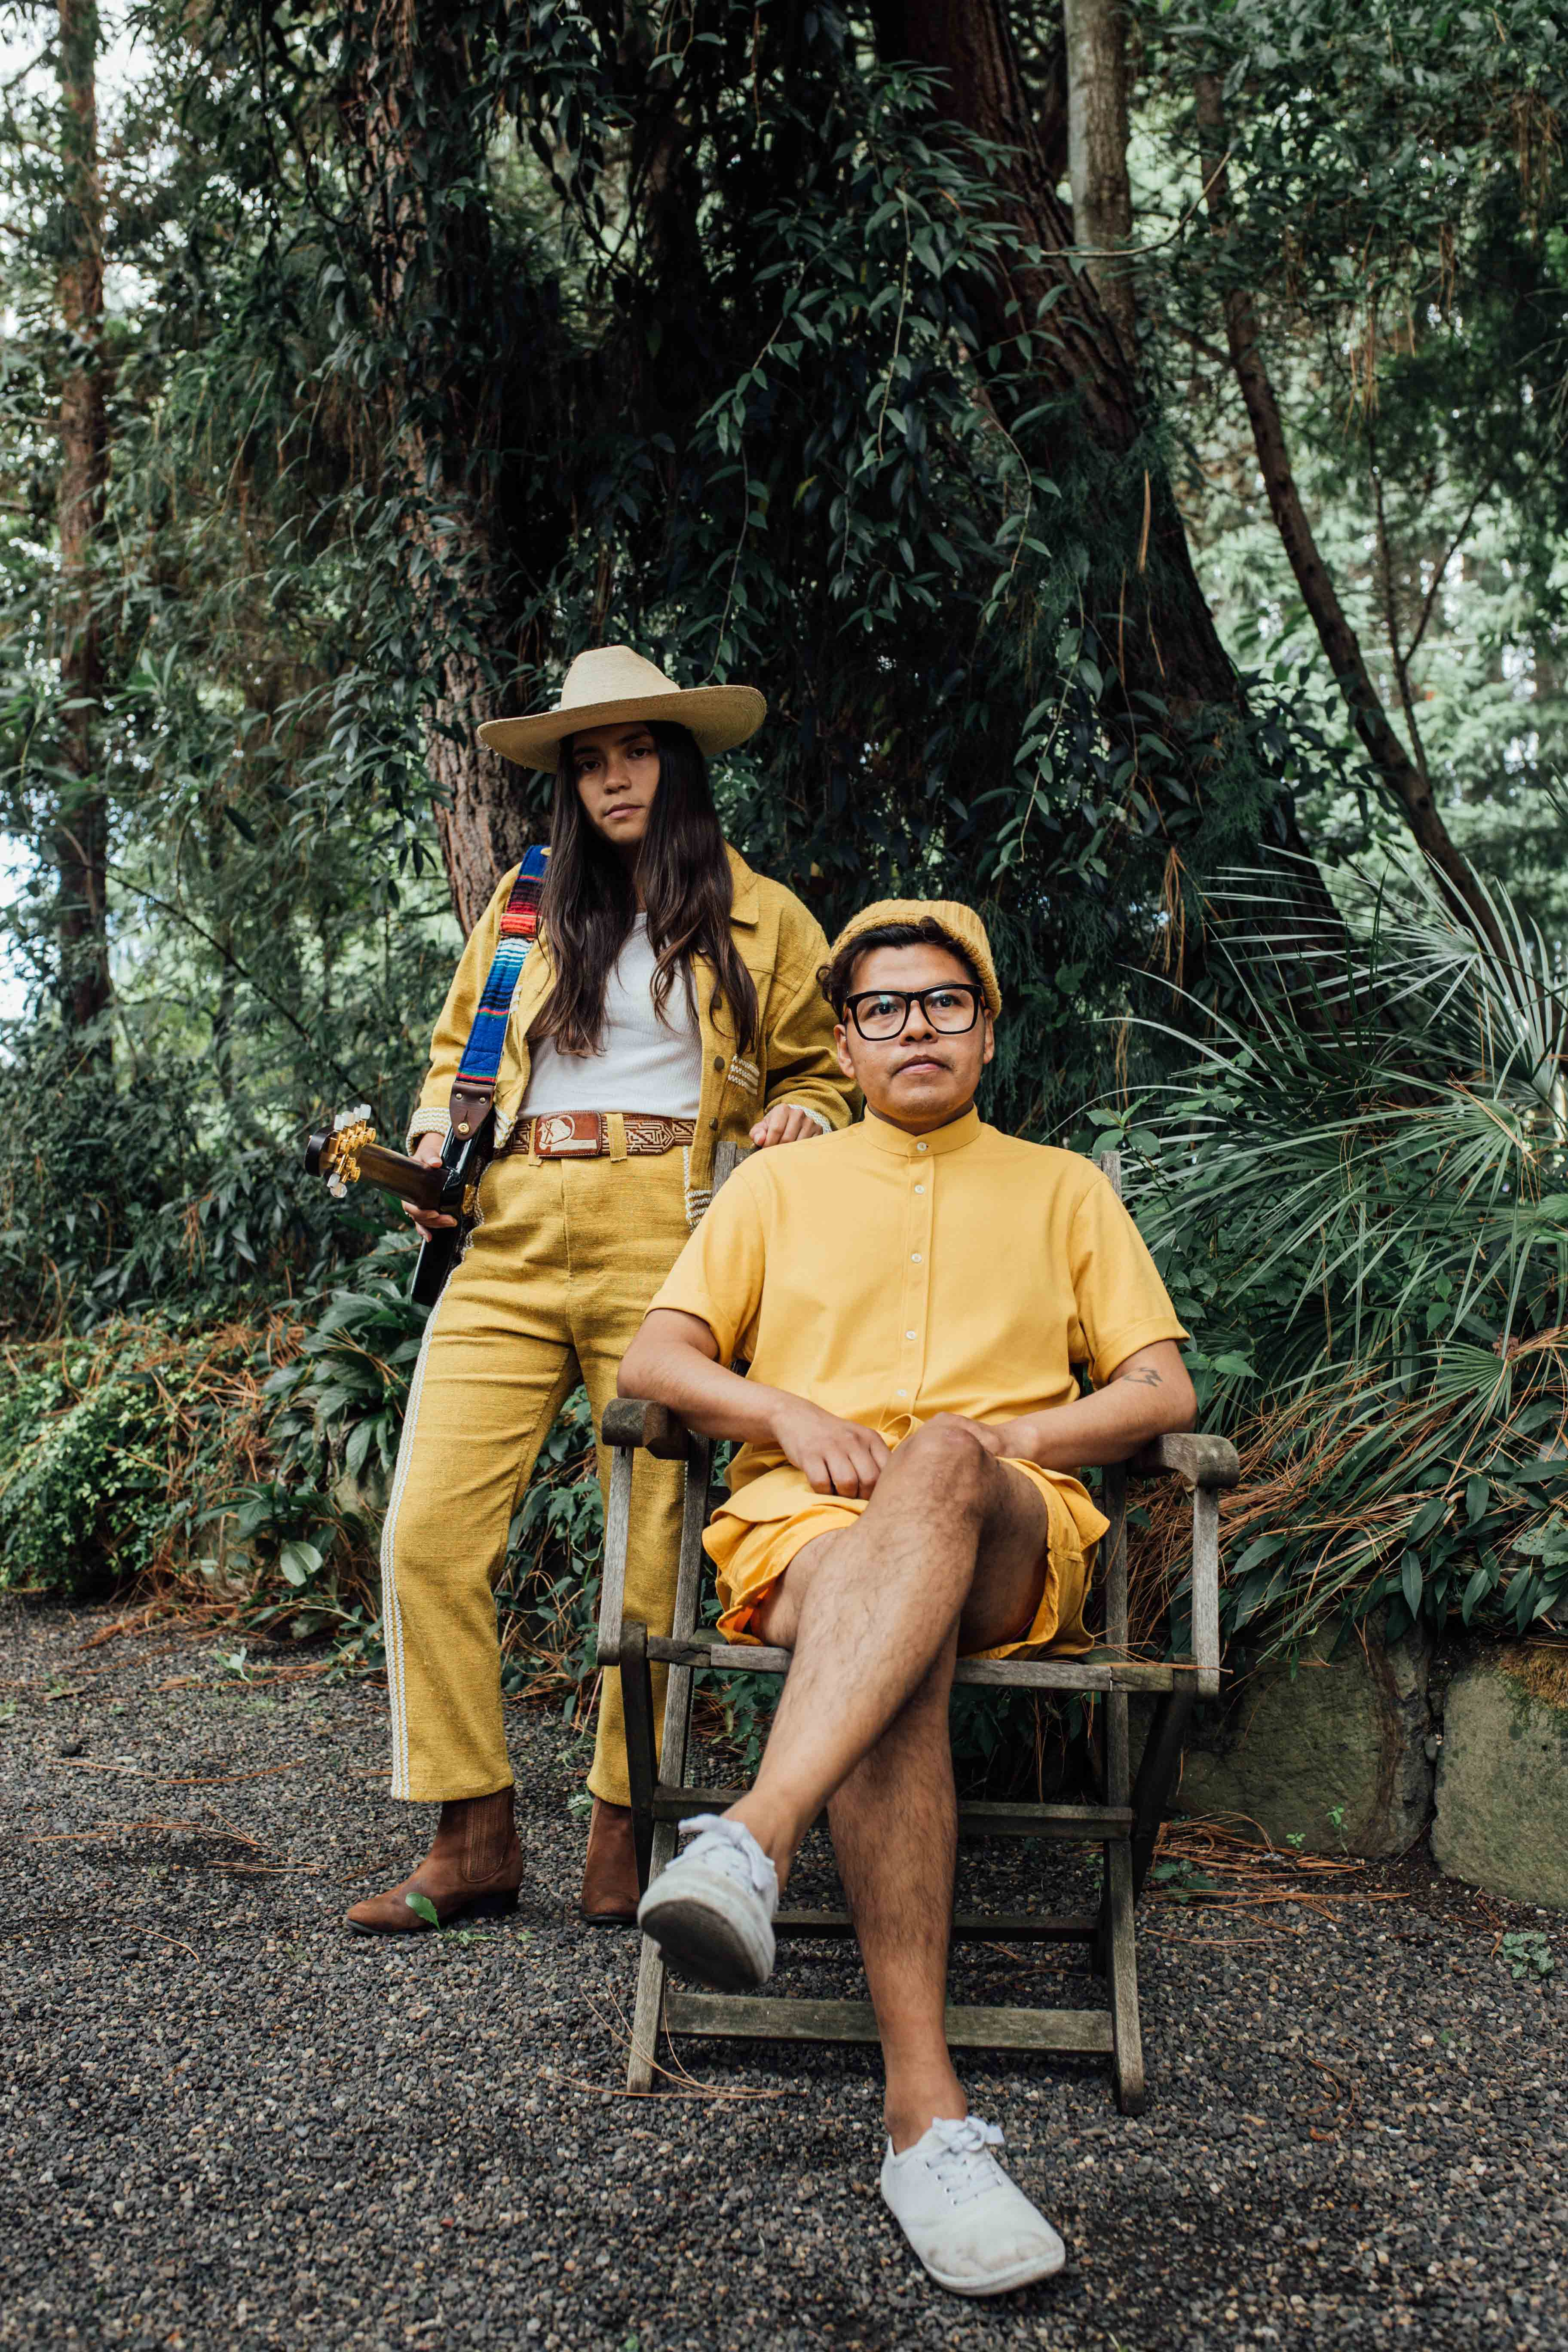 Reyna Tropical: A Queer Love Revolution